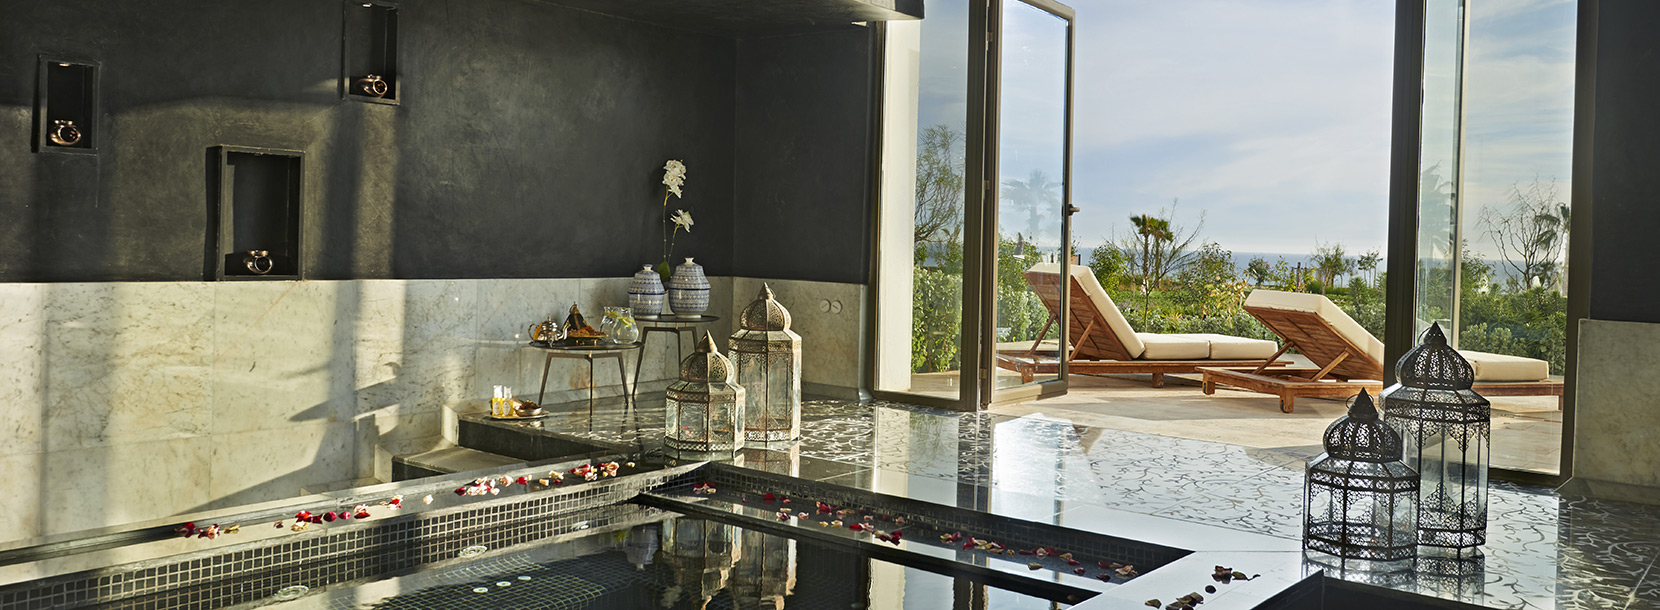 spa in taghazout take a time for yourself and relaxe tourism in morocco